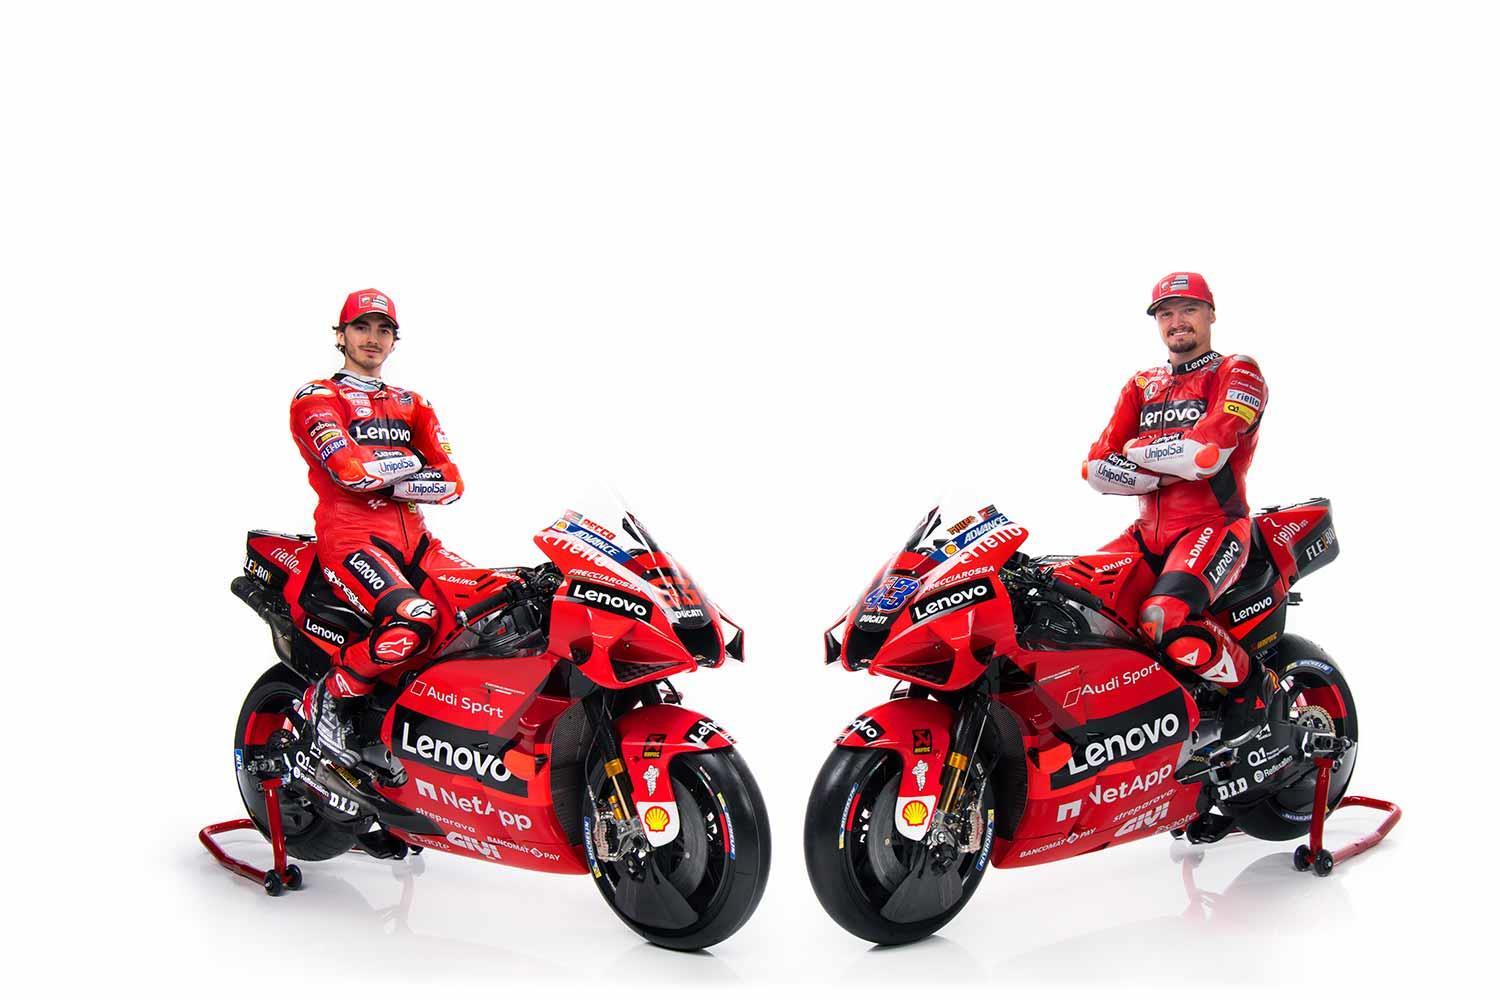 Motogp Ducati Officially Unveils Its 2021 Livery And Rider Line Up Mcn